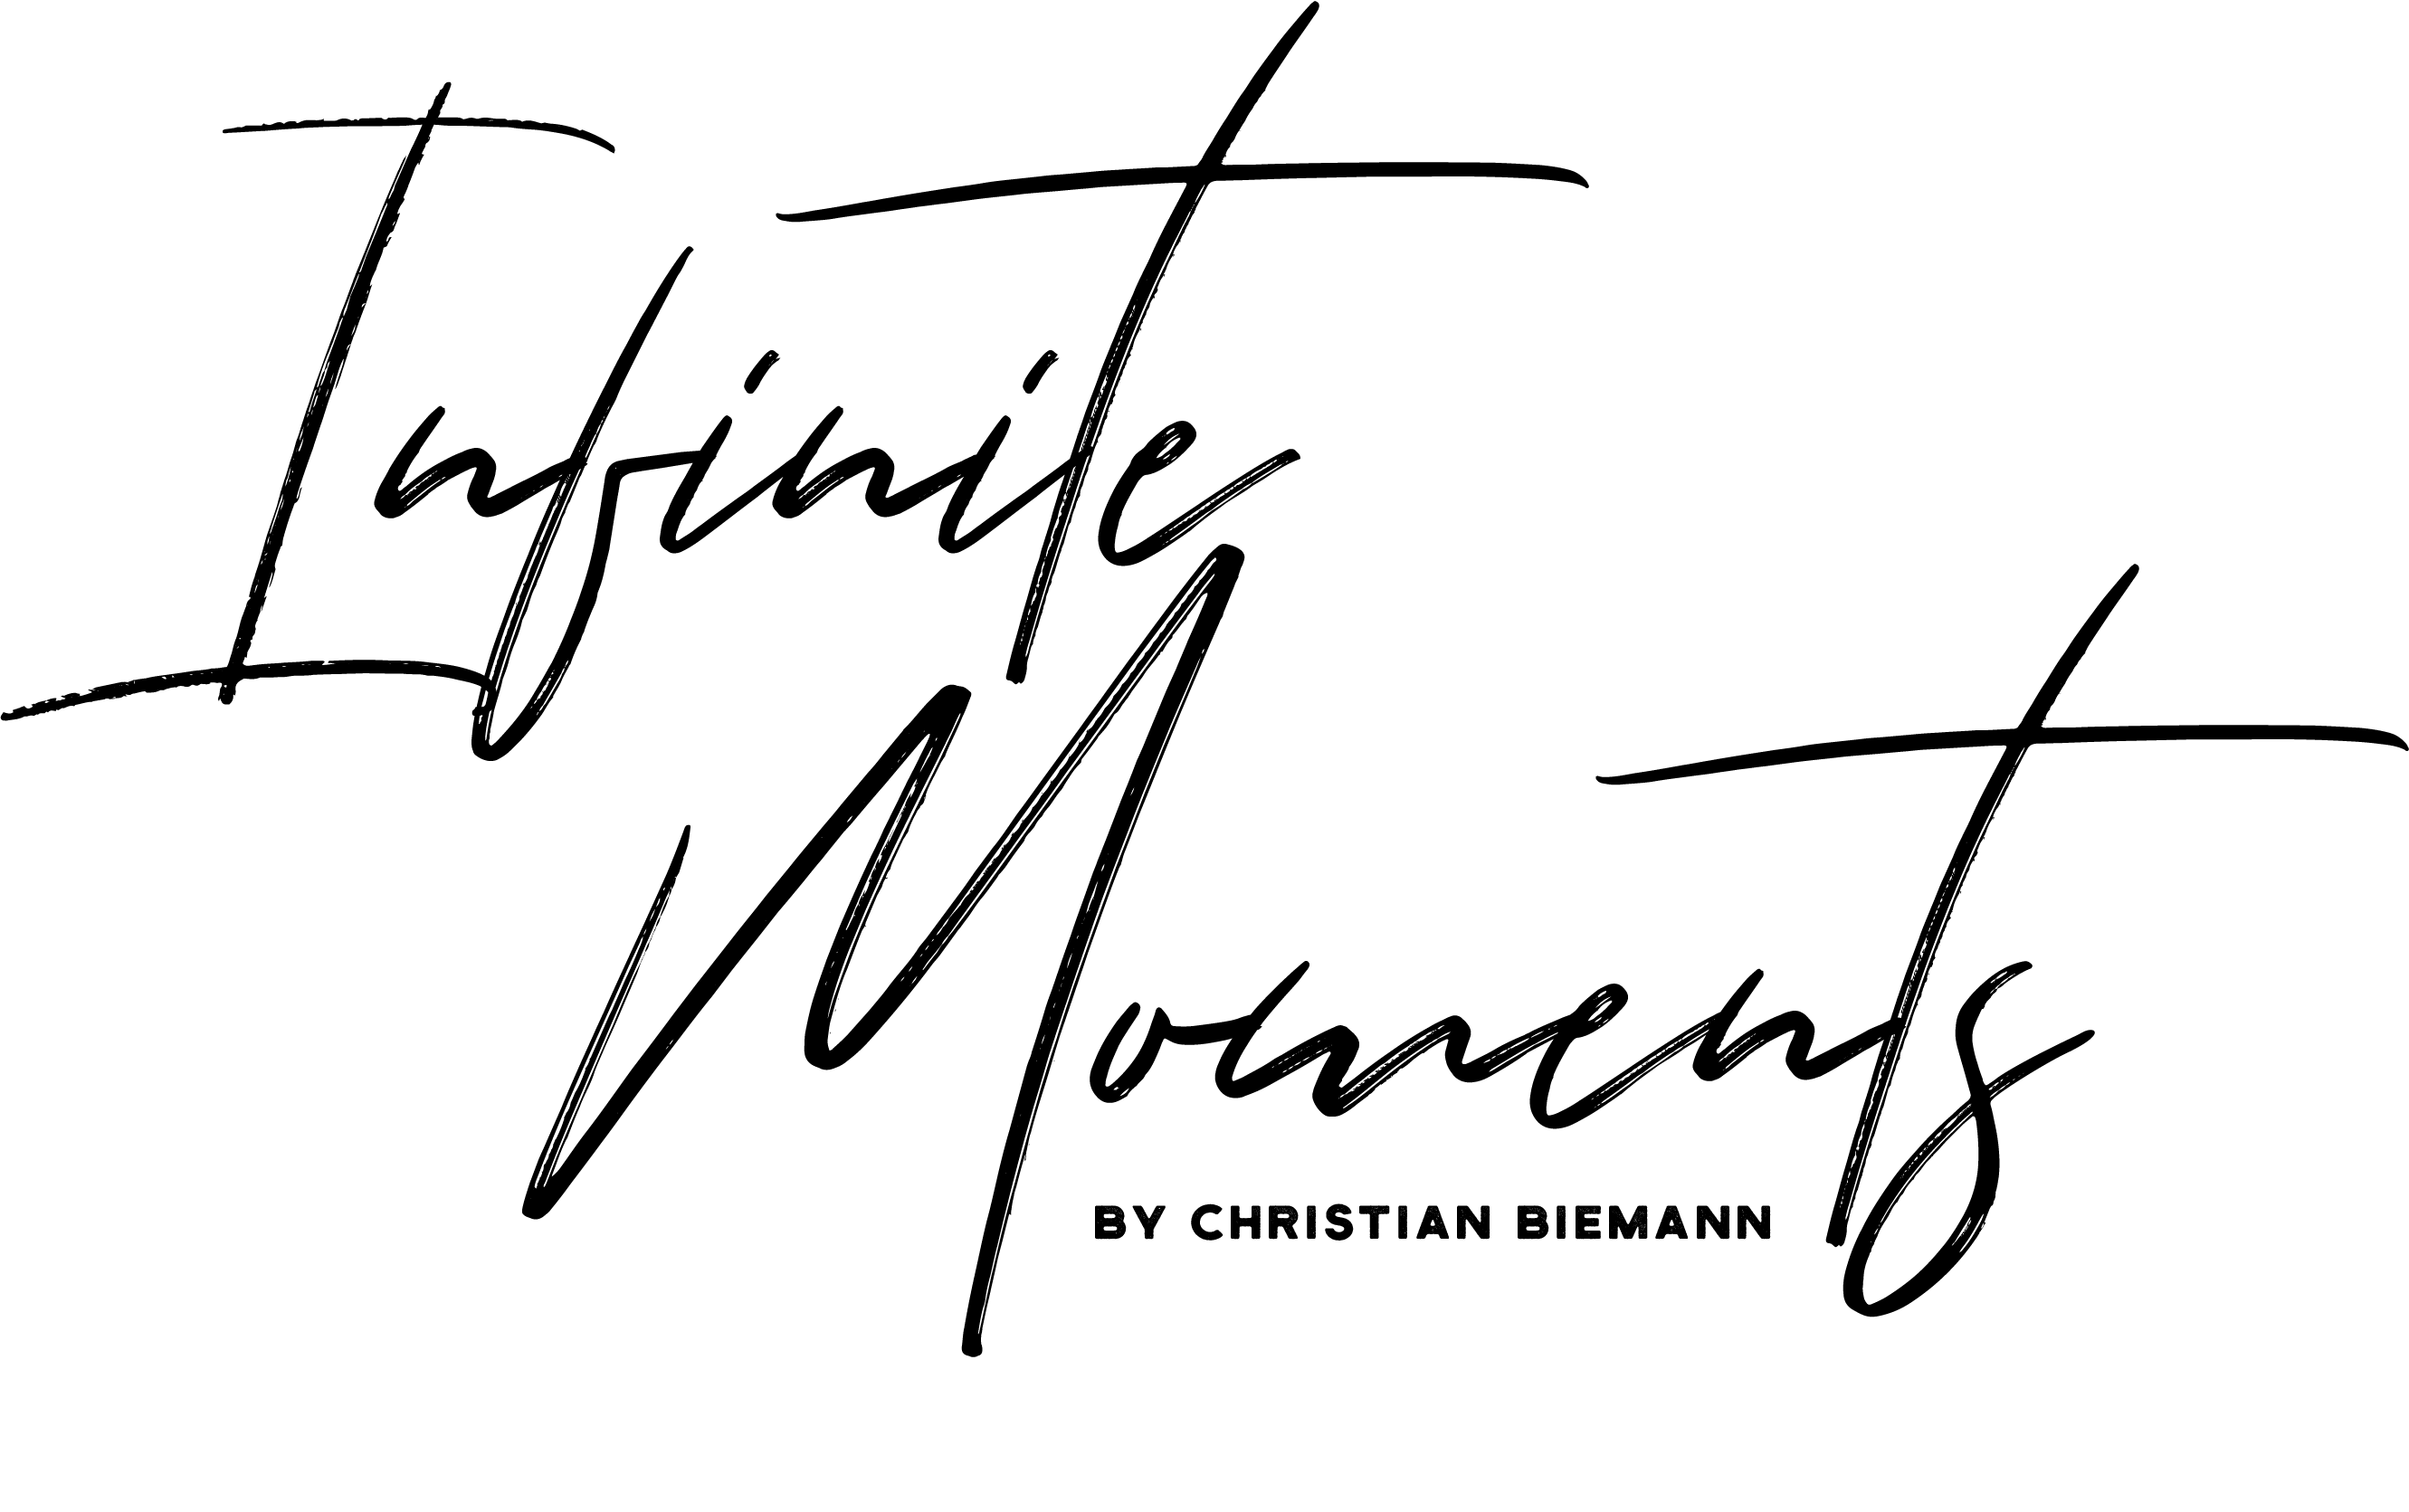 Logo infinite-moments by Christian Biemann | Hochzeitsfotografie